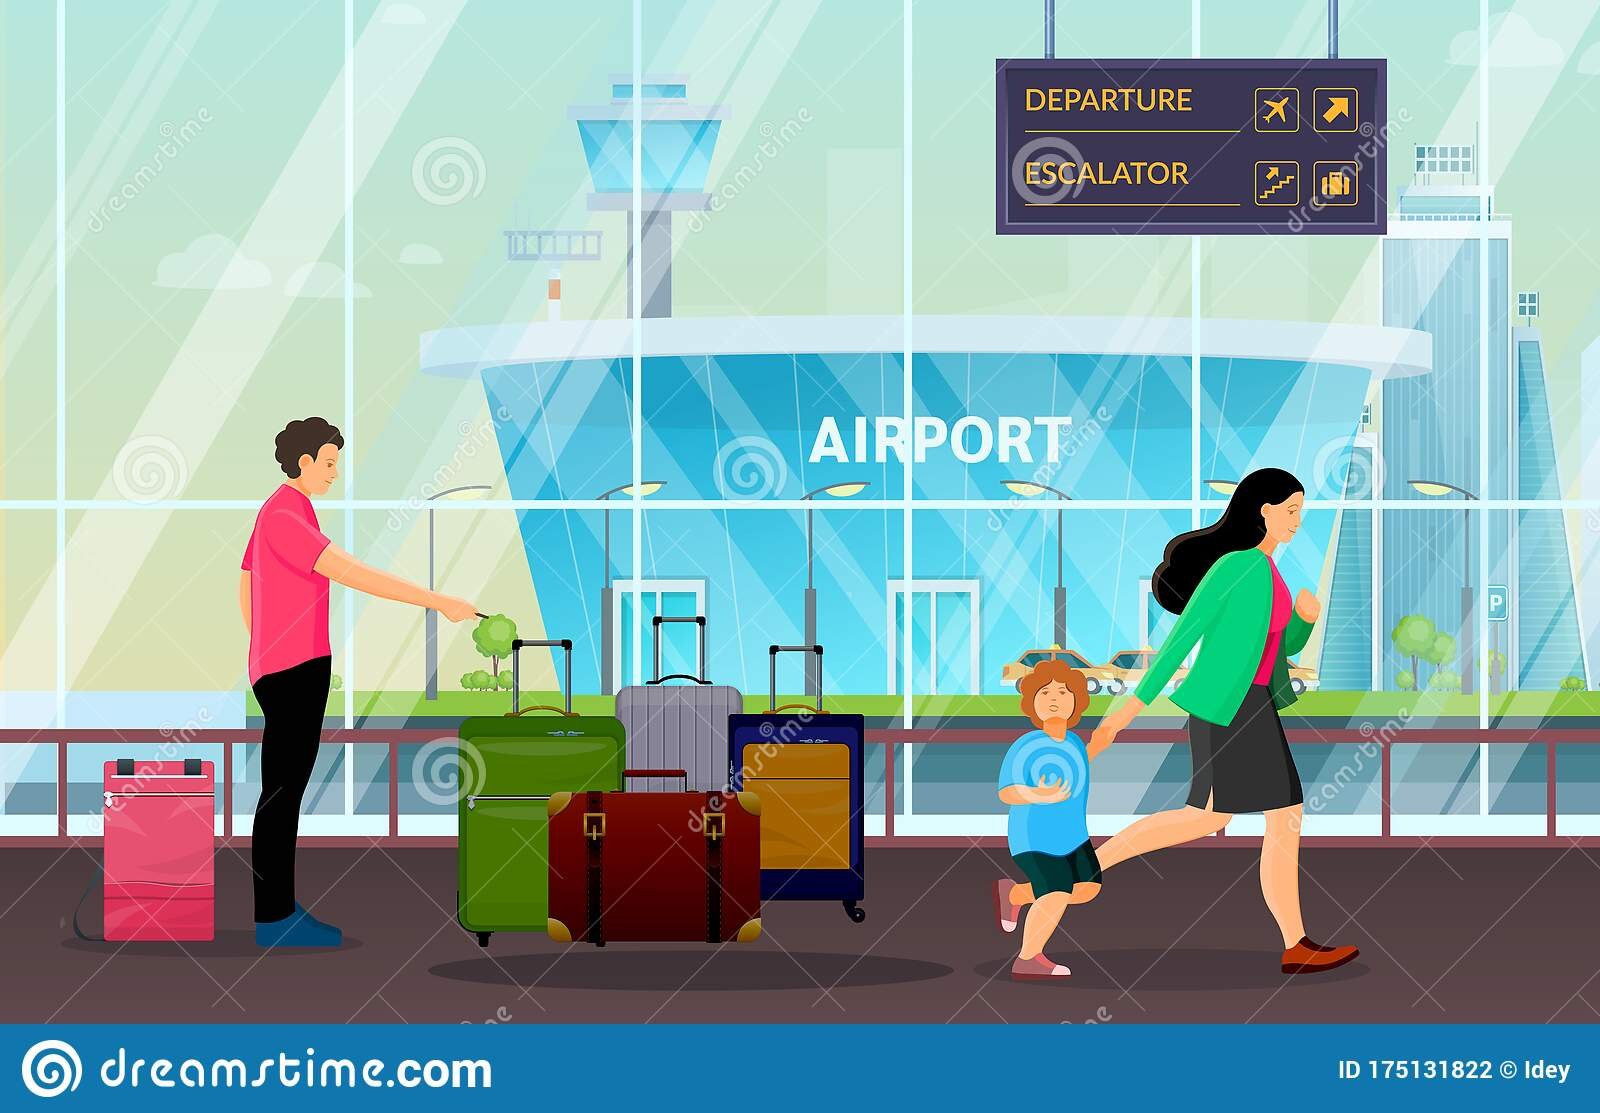 Passenger Group People Together Waiting In Airport Terminal Stock Vector Illustration Of Departure Station 175131822